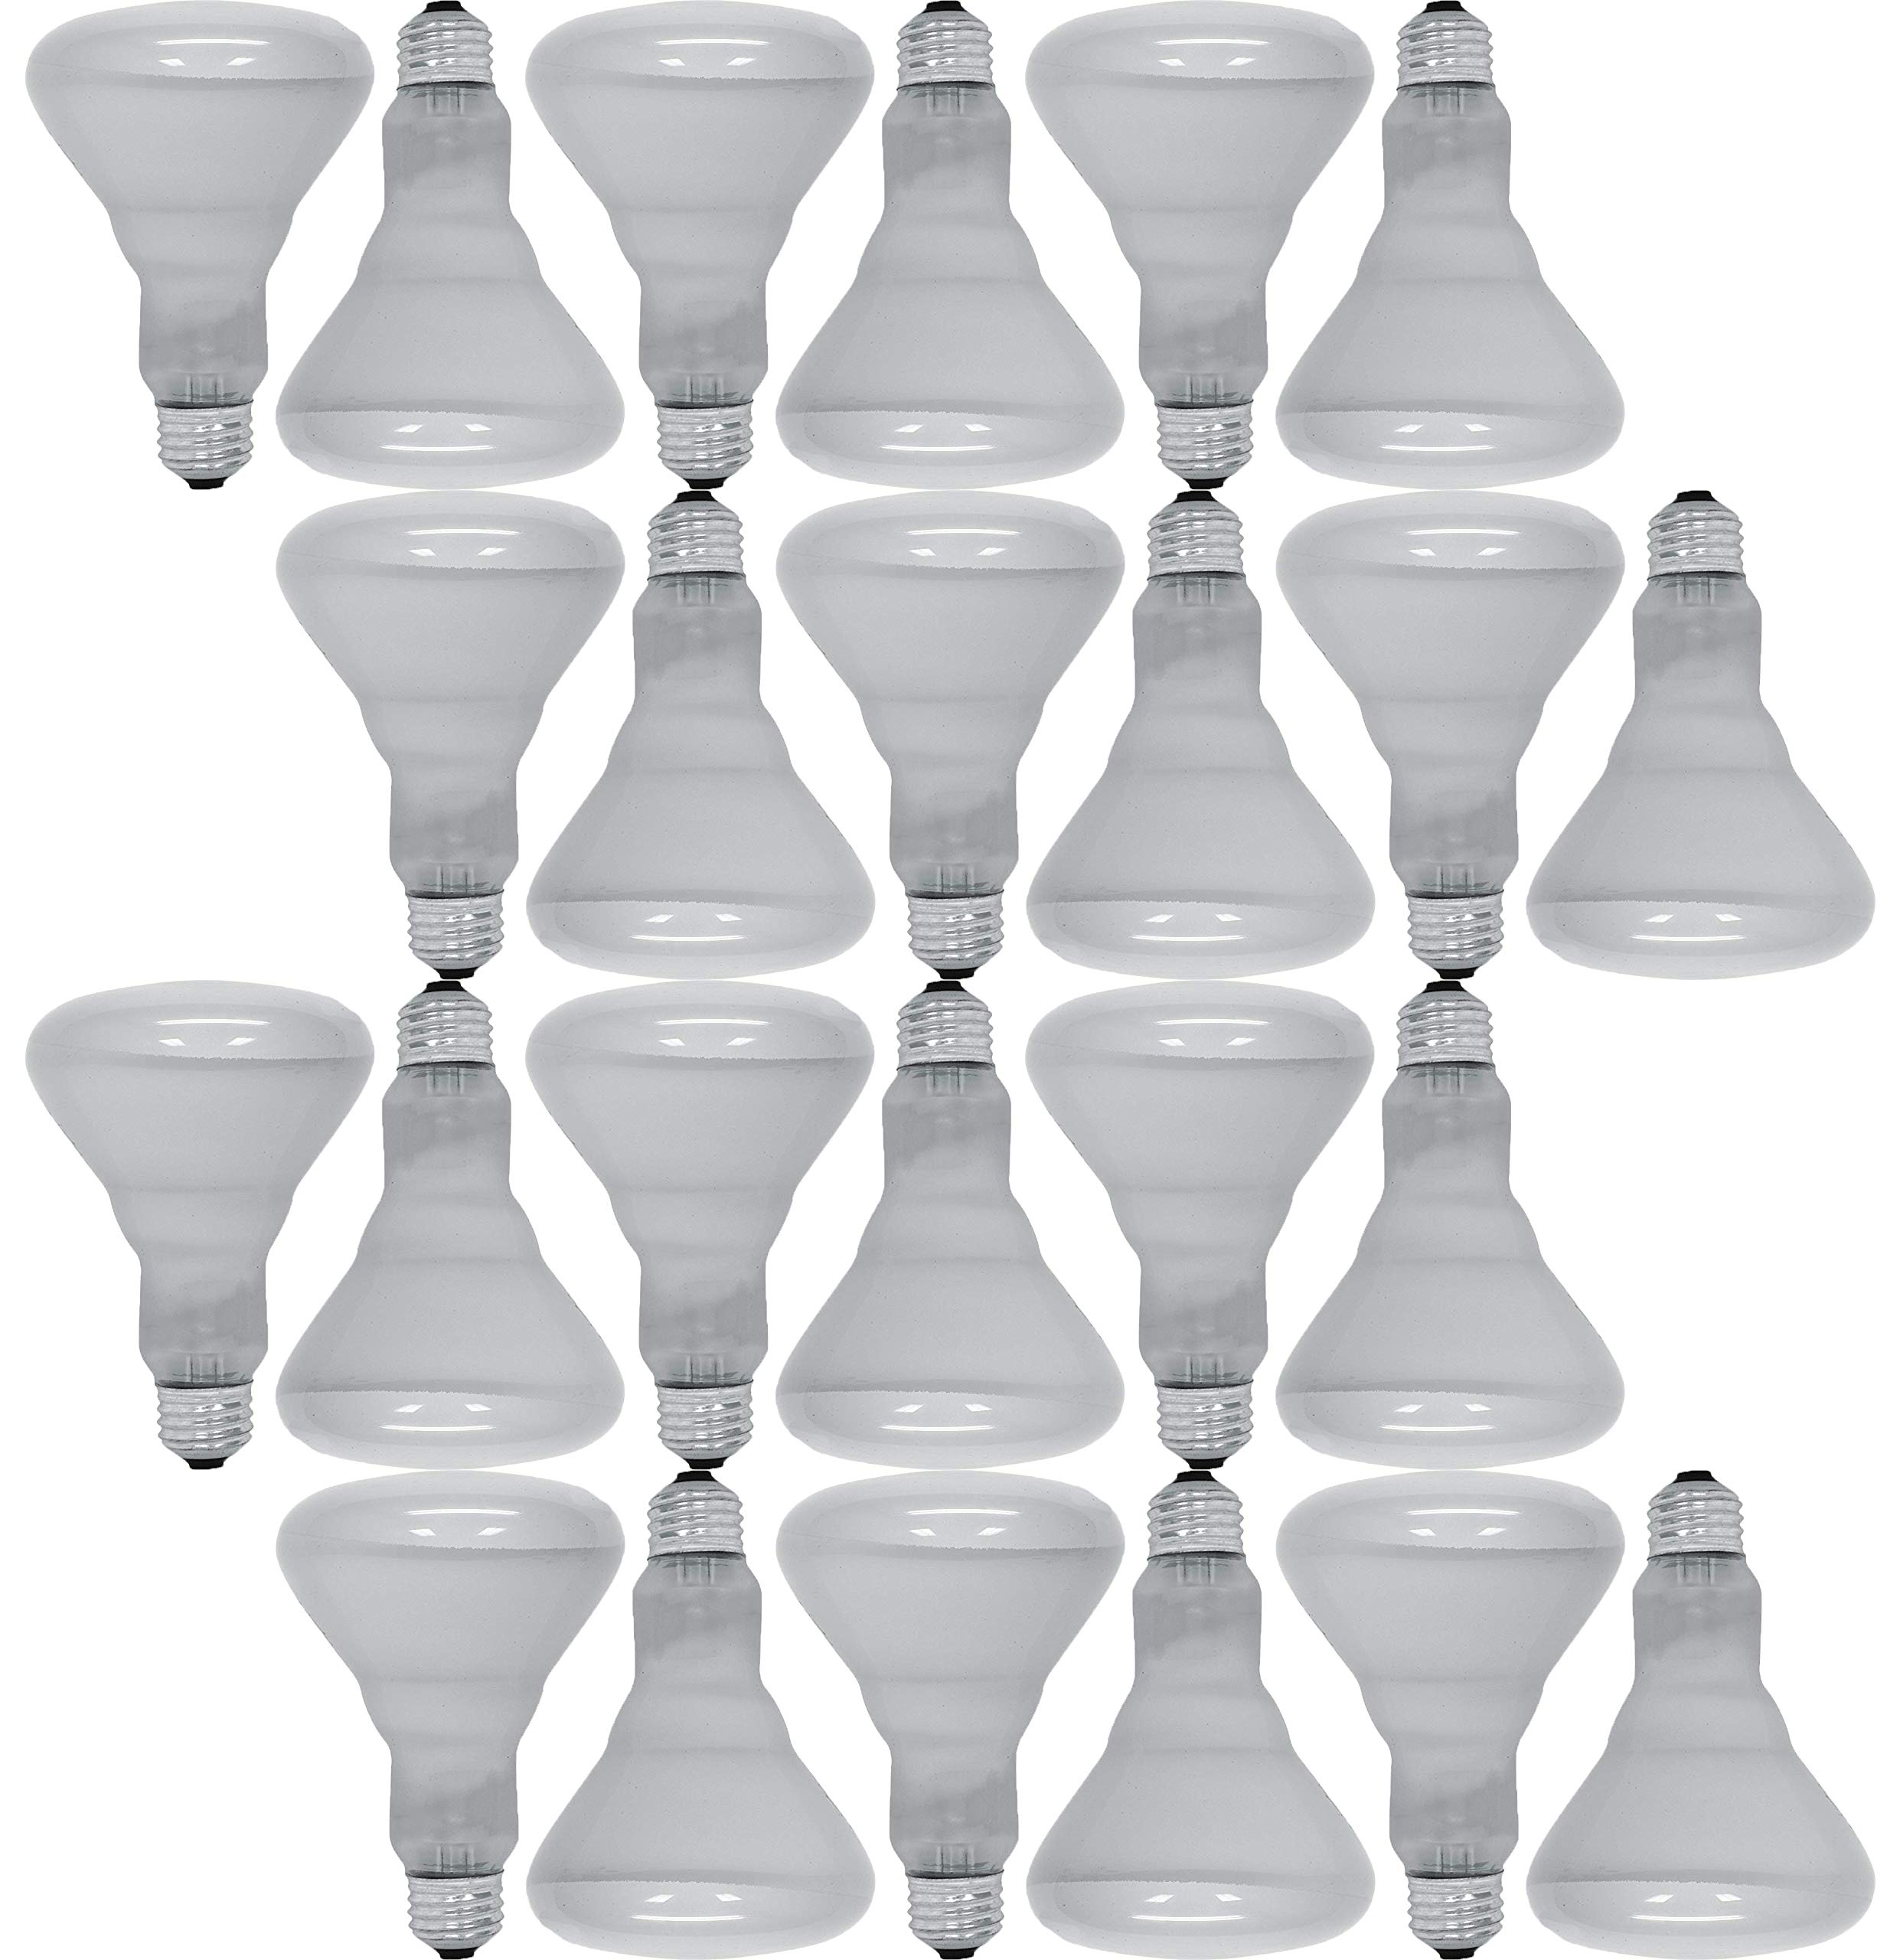 GE Lighting 65 Watt 580 Lumens Soft White Reflector Floodlight BR30 Light Bulb (24 Bulbs)